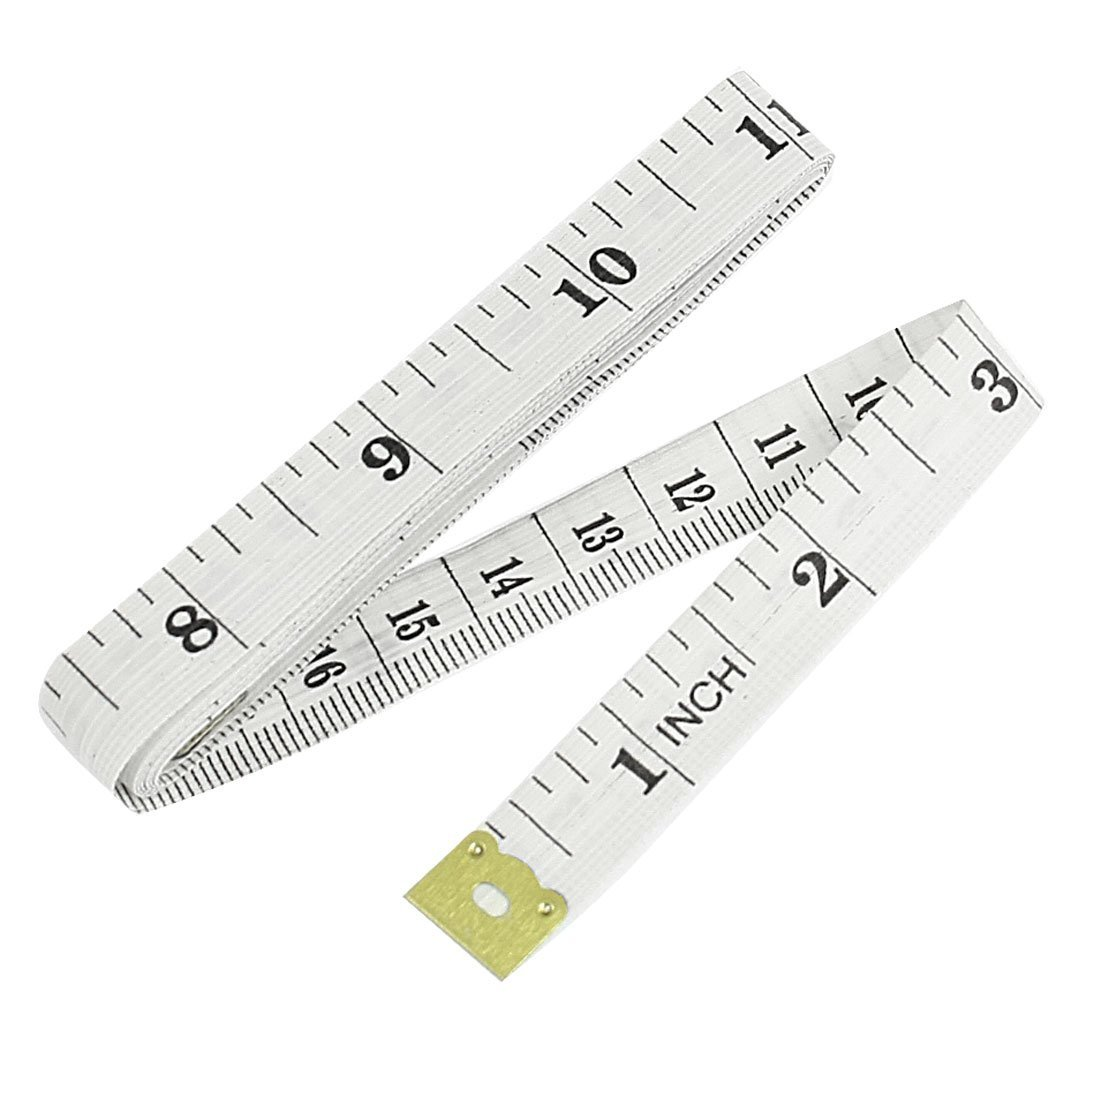 Mylb 150 Cm 60 Soft Plastic Ruler Tailor Sewing Cloth Measure Tape In Tape Measures From Tools